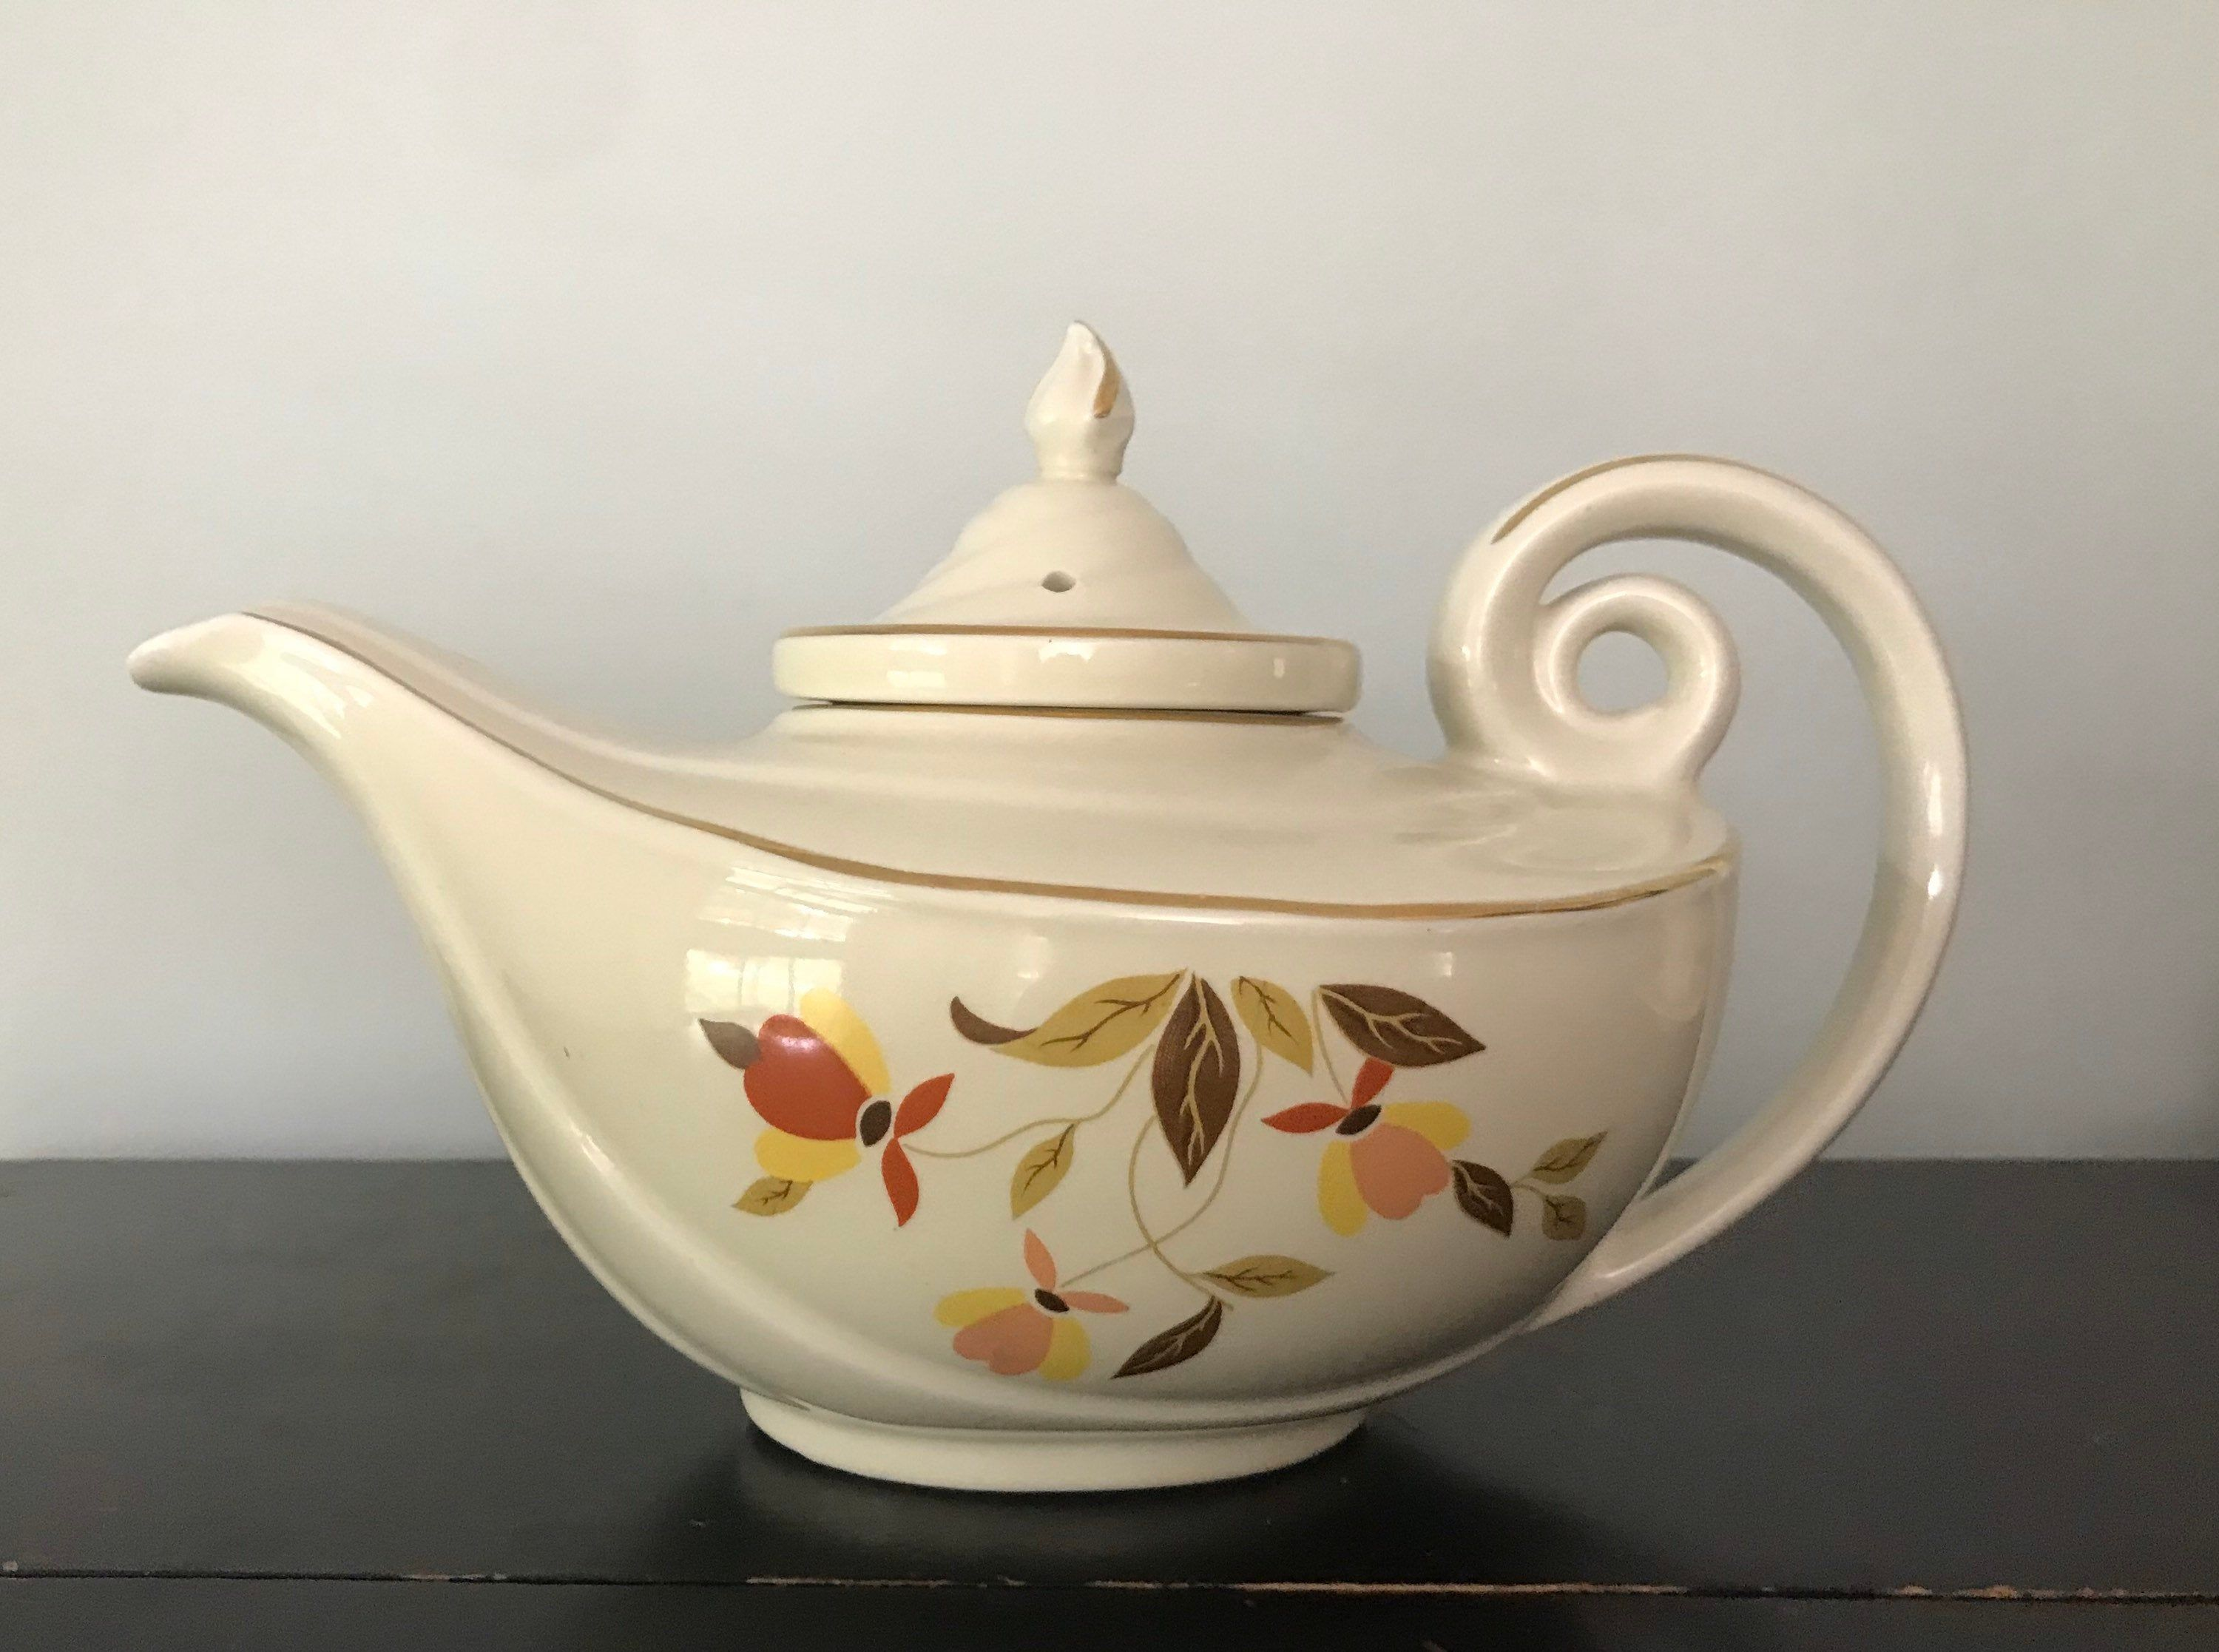 Hall S Superior Quality Kitchenware Aladdin Teapot With Etsy Tea Pots Vintage Tea Pots Pewter Candle Holders